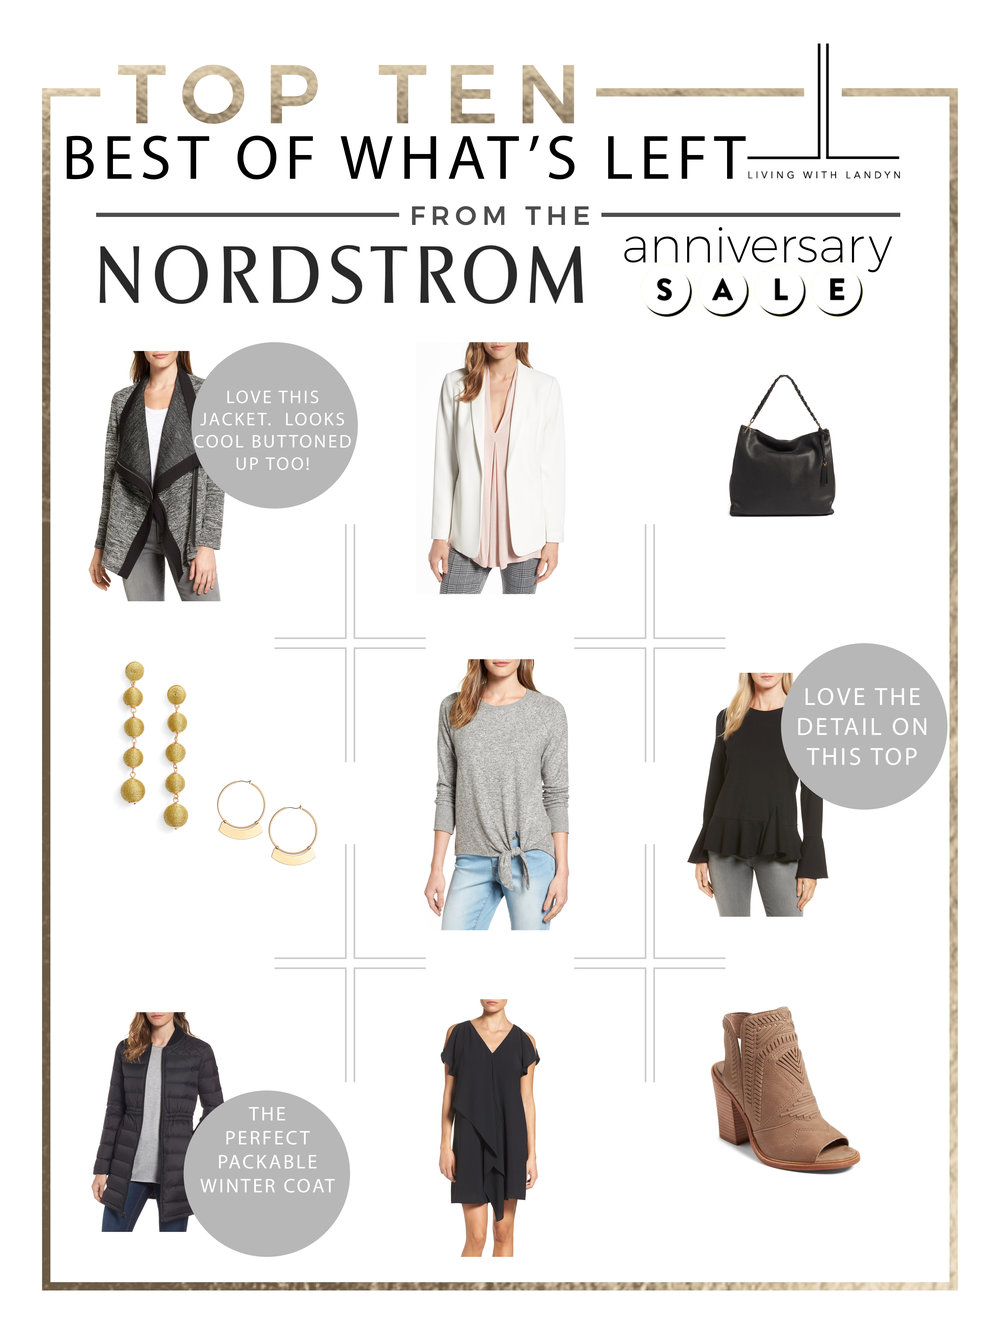 LWL Nordstrom Anniversary best of whats left_edited-1.jpg